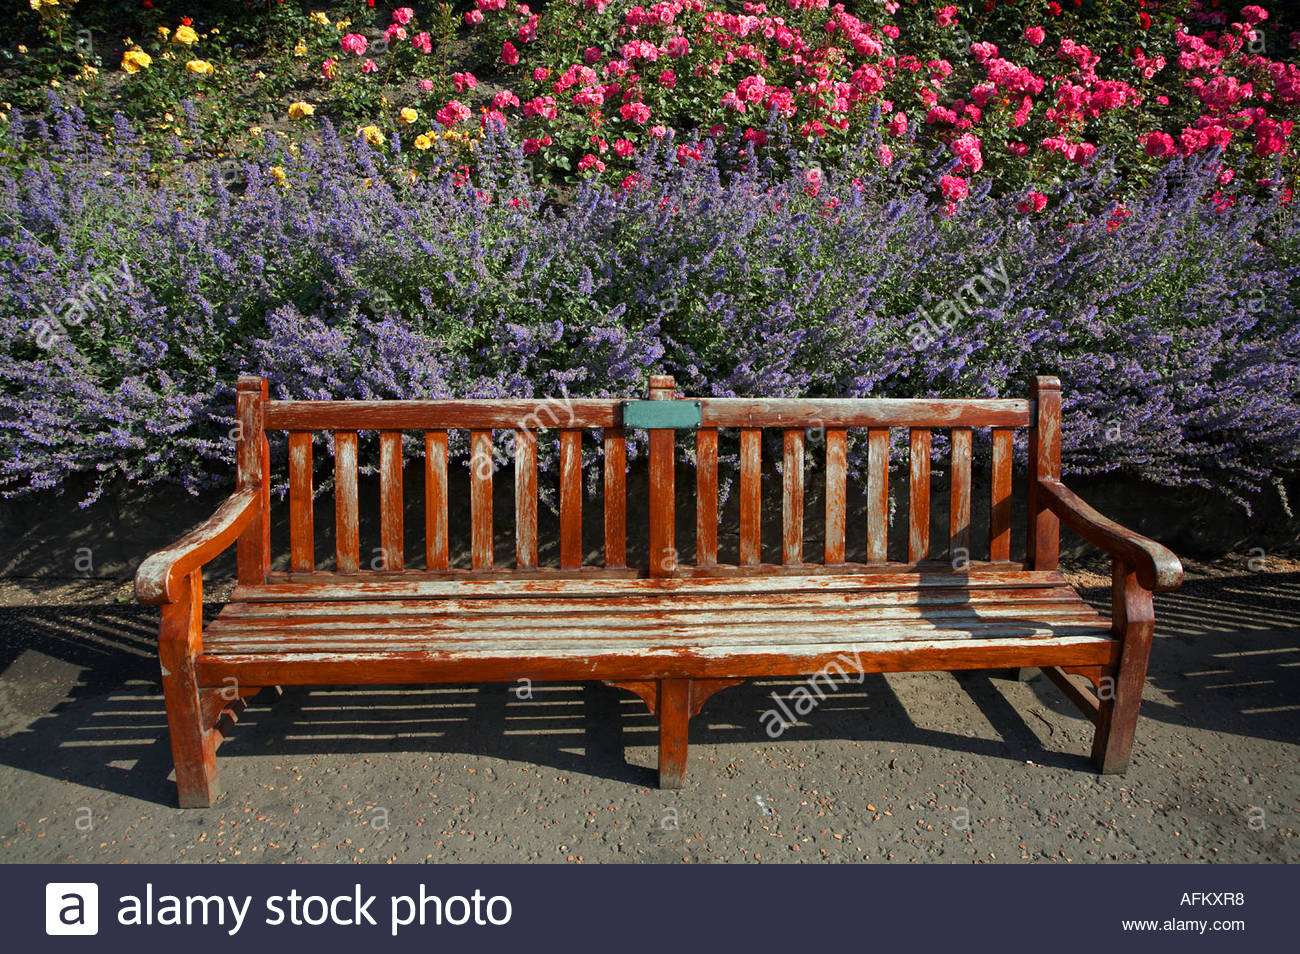 Park And Amenity Furniture Stock Photos & Park And Amenity Furniture ...